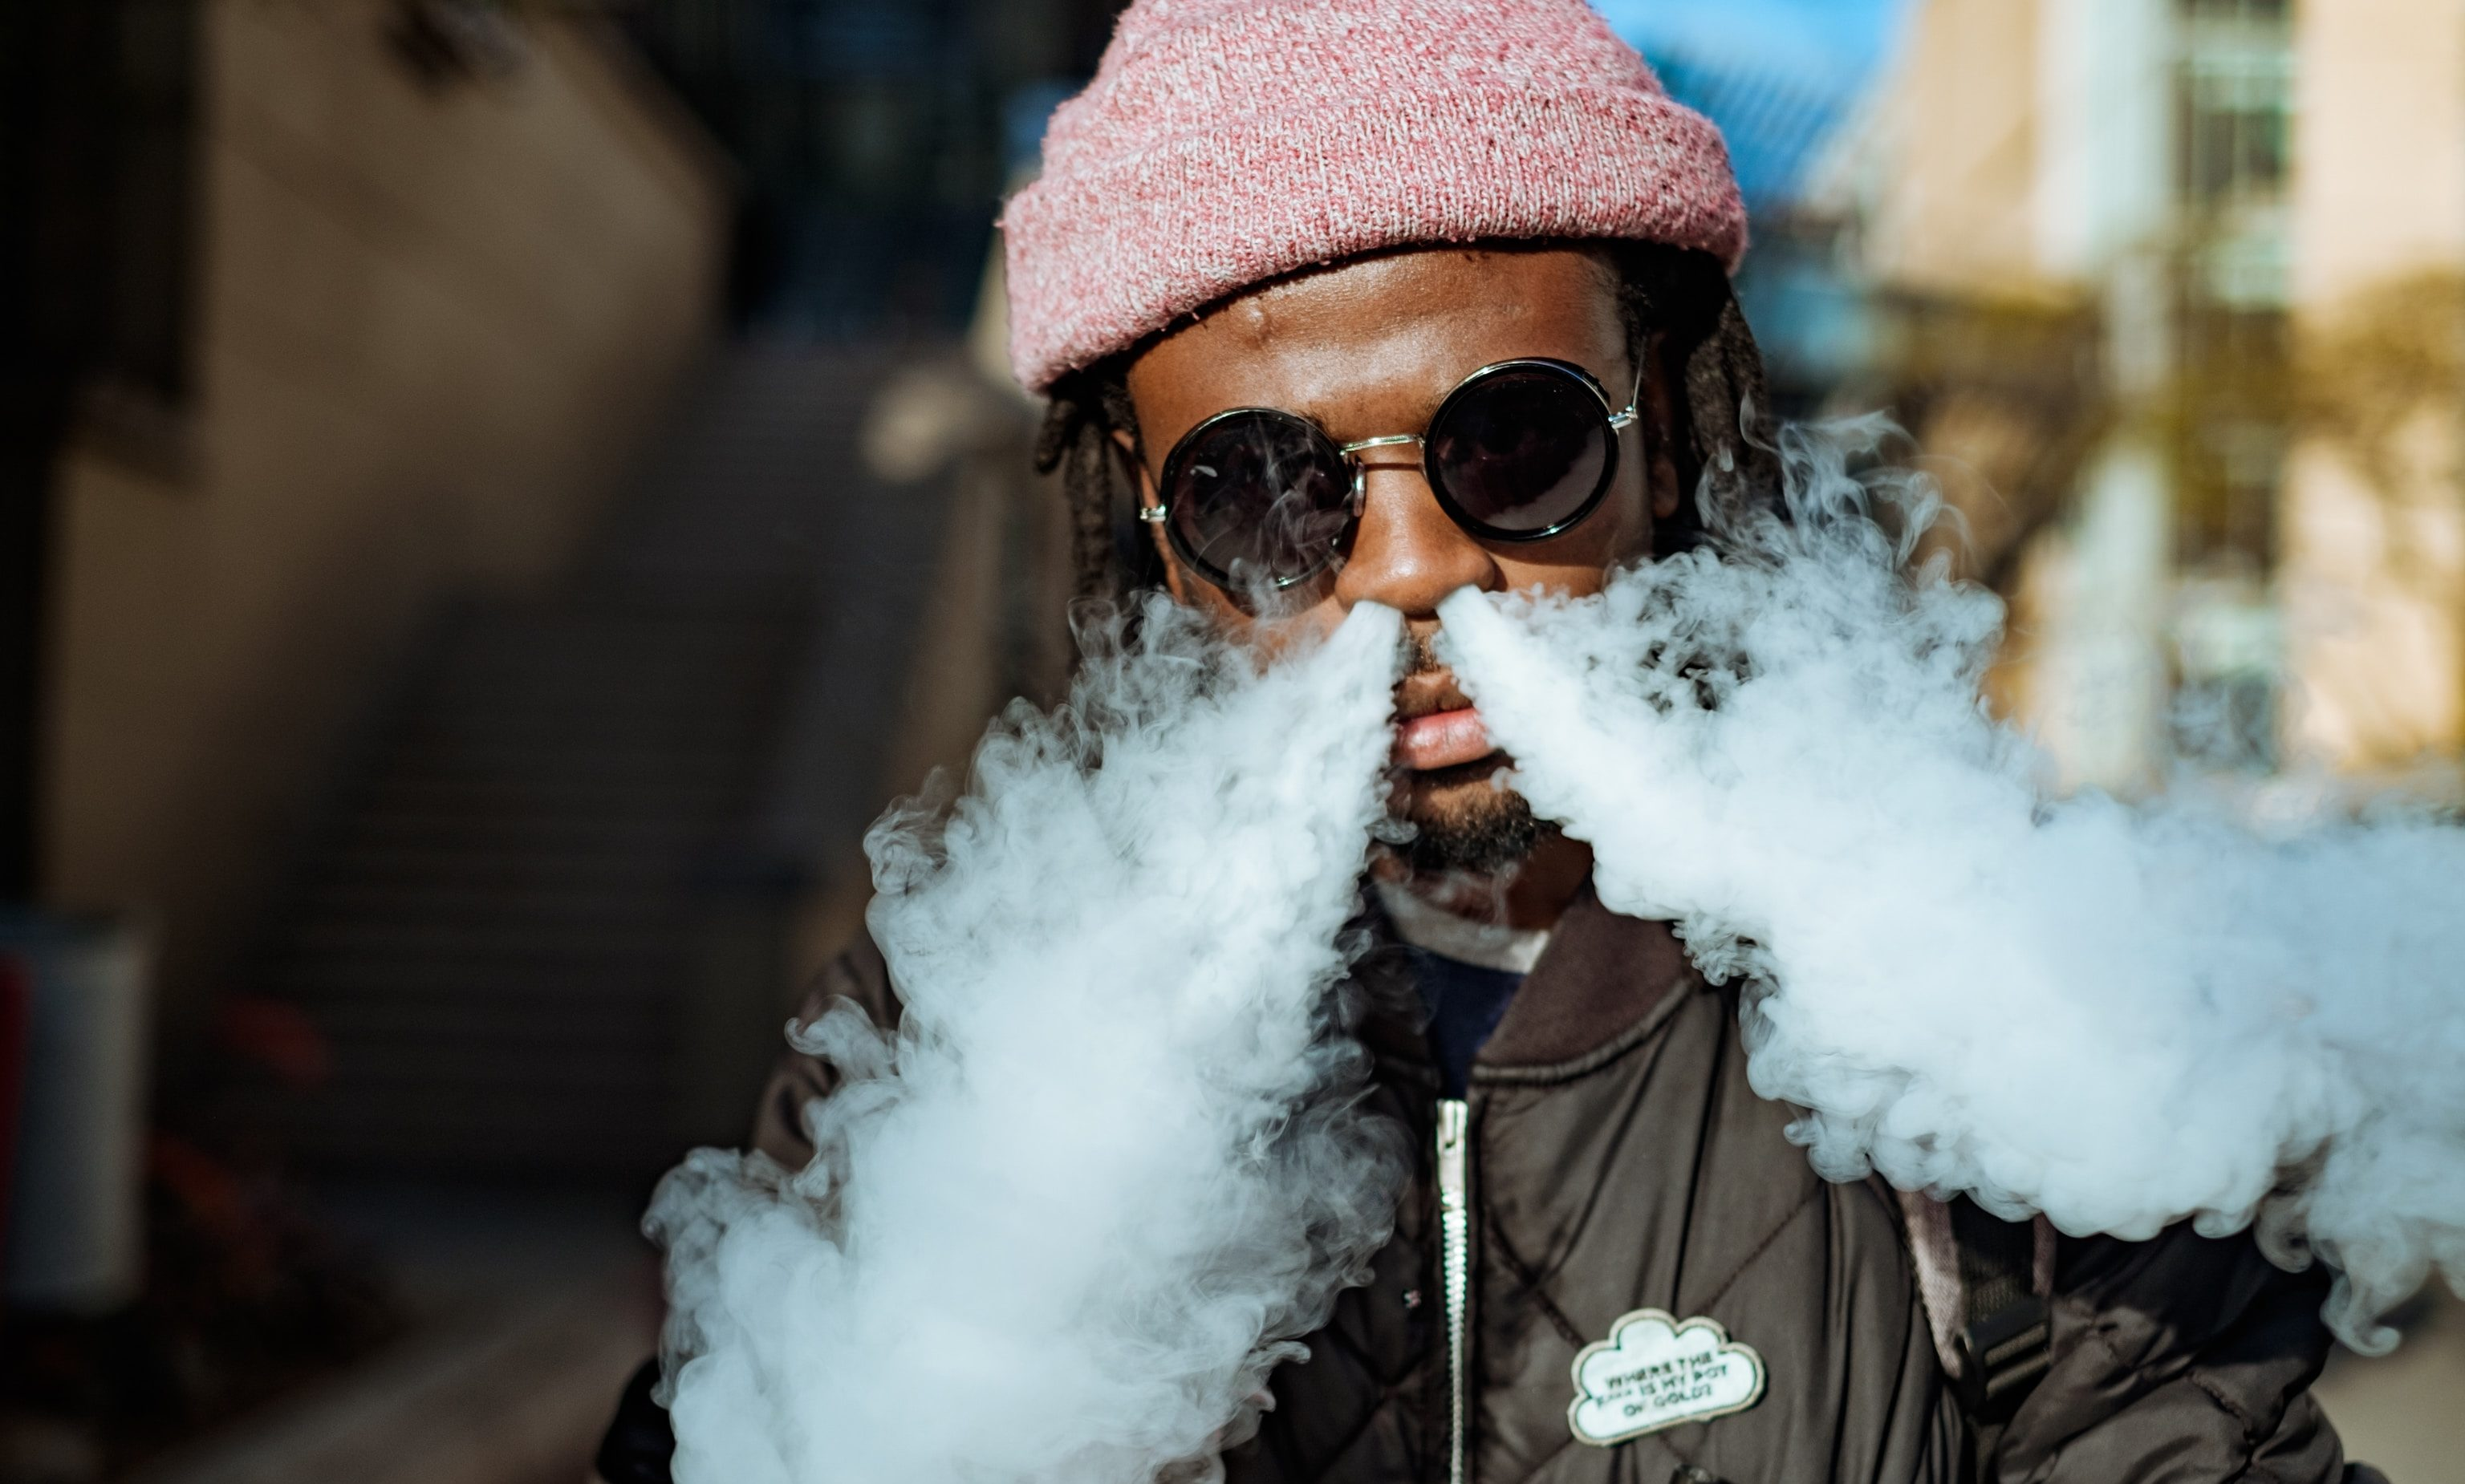 The week in weed: Vaping-related lung illnesses soar